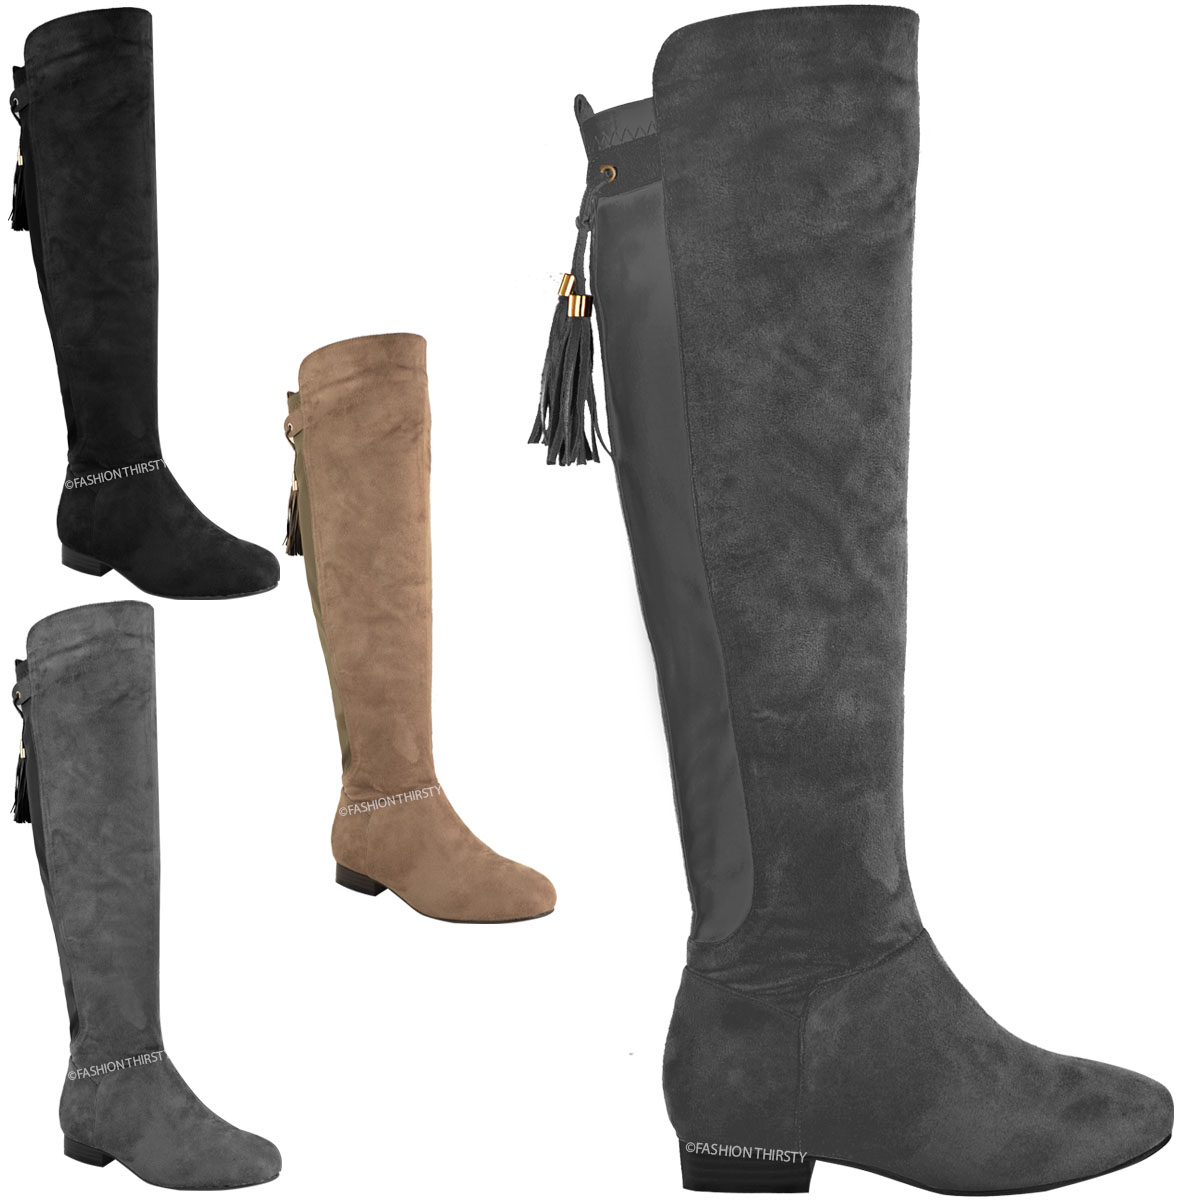 NEW WOMENS LADIES OVER THE KNEE THIGH HIGH FLAT BOOTS STRETCH WIDE ...